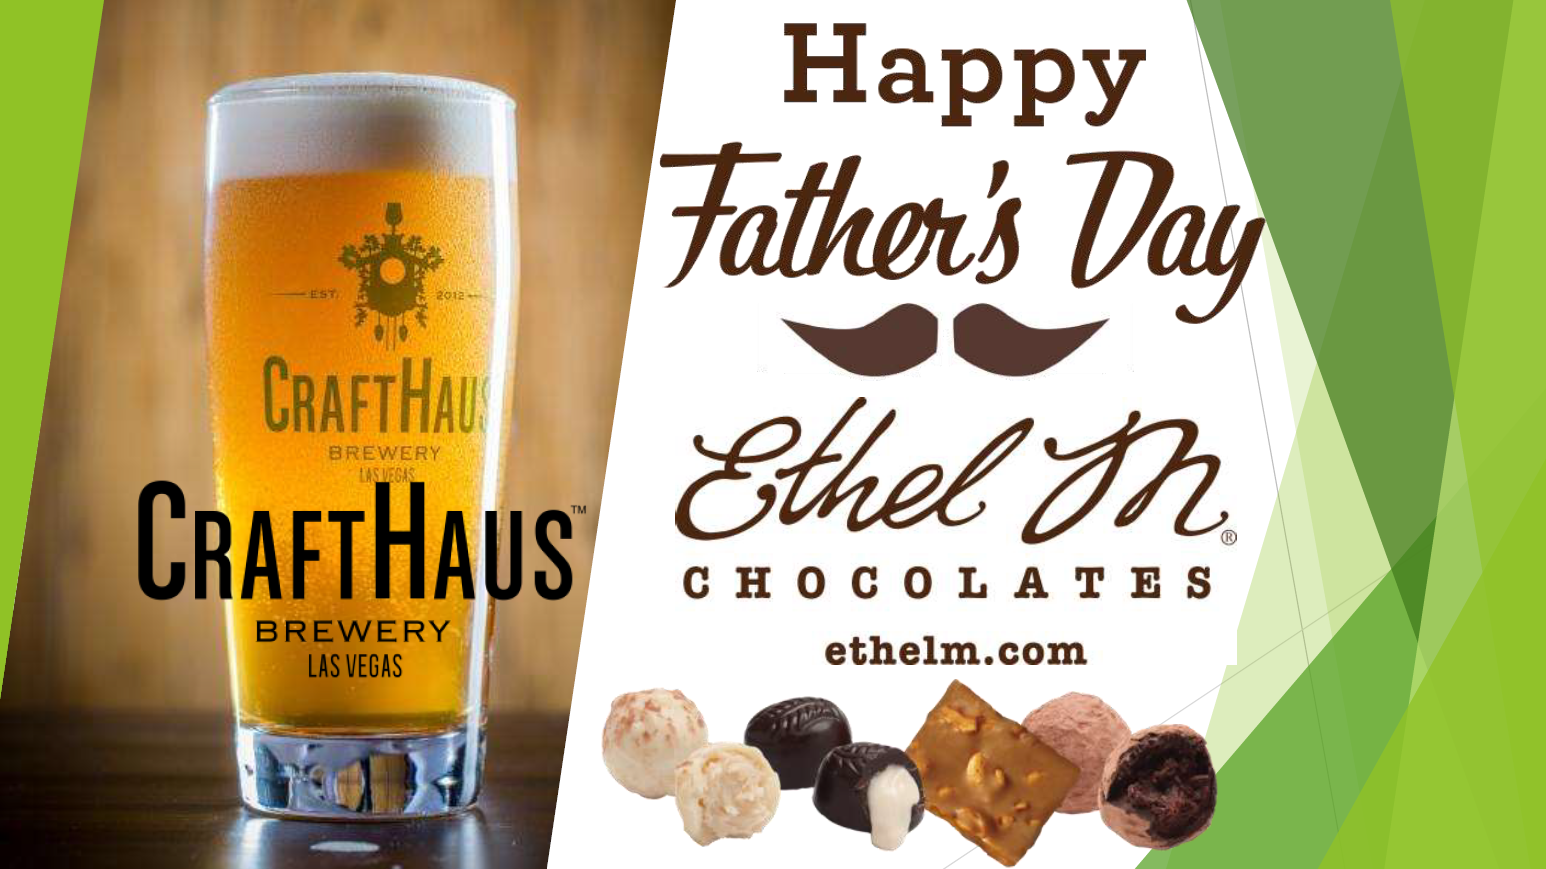 Join us for a Father's Day Beer Tasting with CraftHaus & Ethel M Chocolates